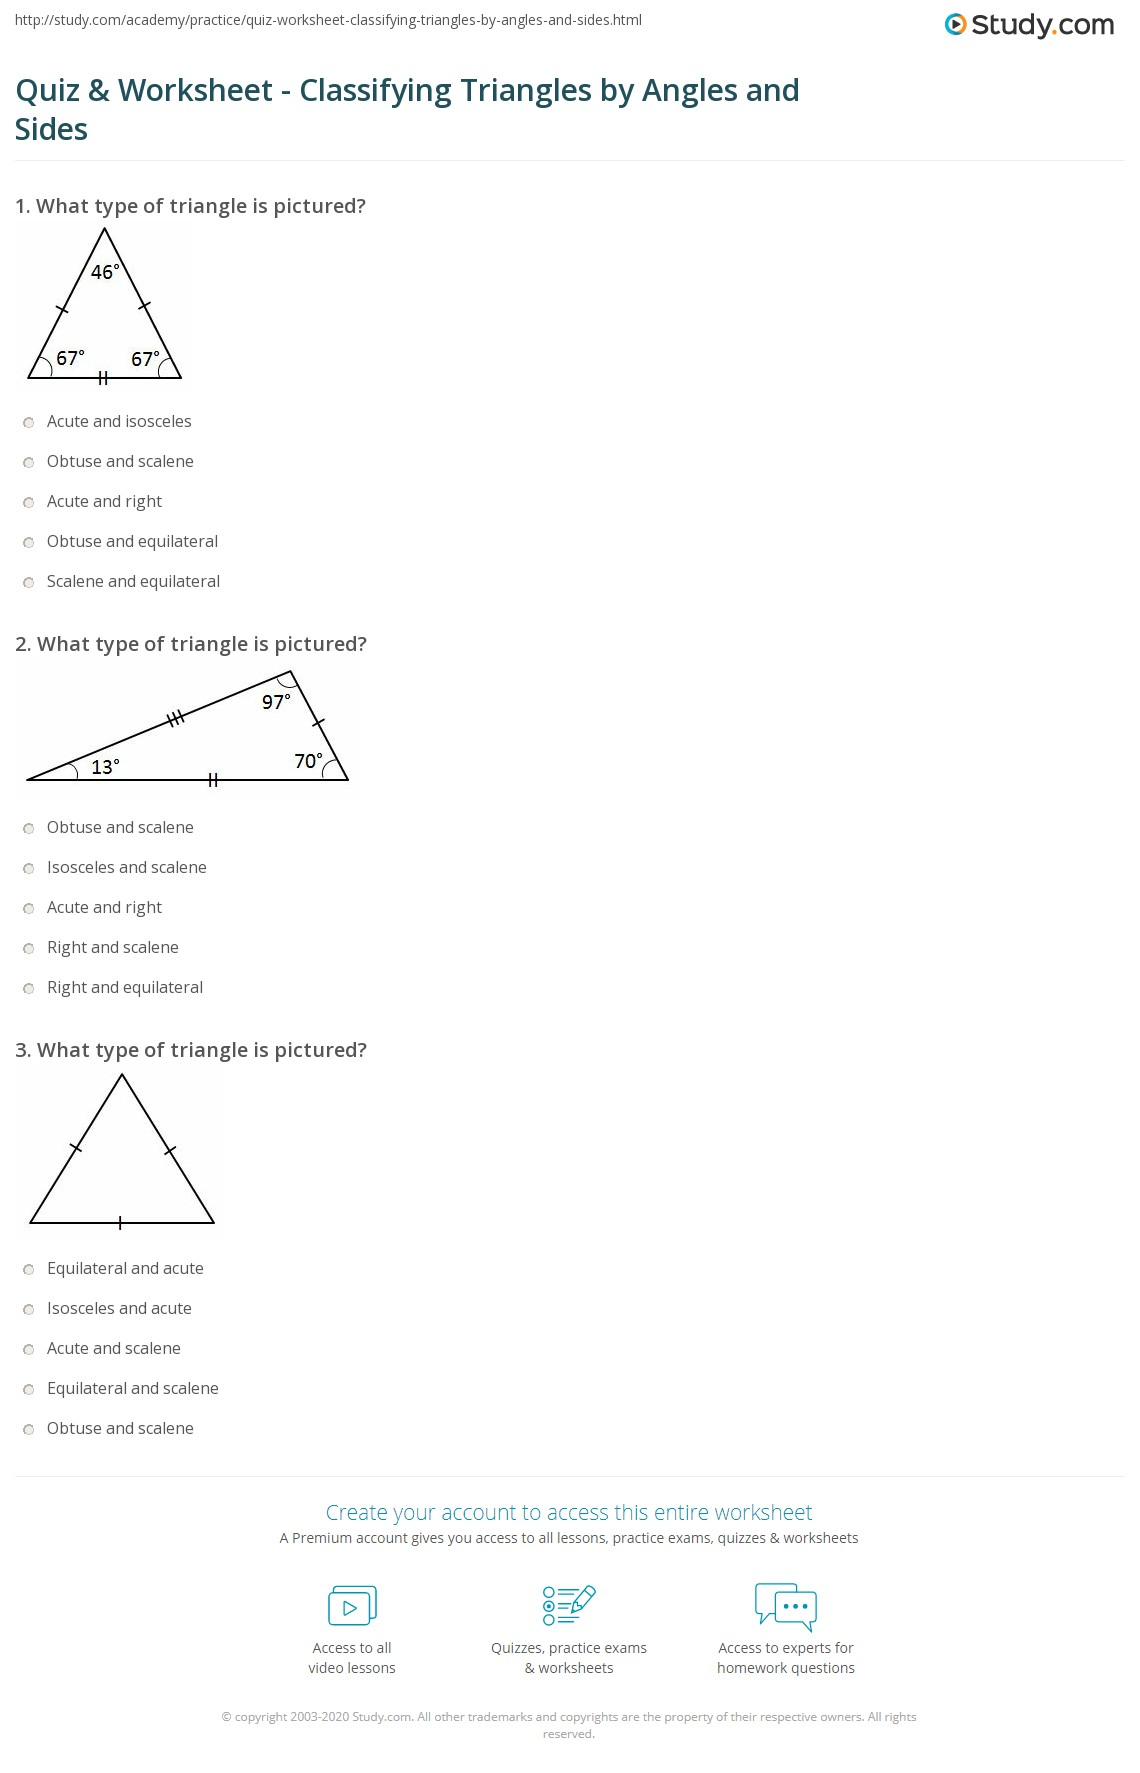 Worksheets Classifying Triangles Worksheet quiz worksheet classifying triangles by angles and sides study com print worksheet